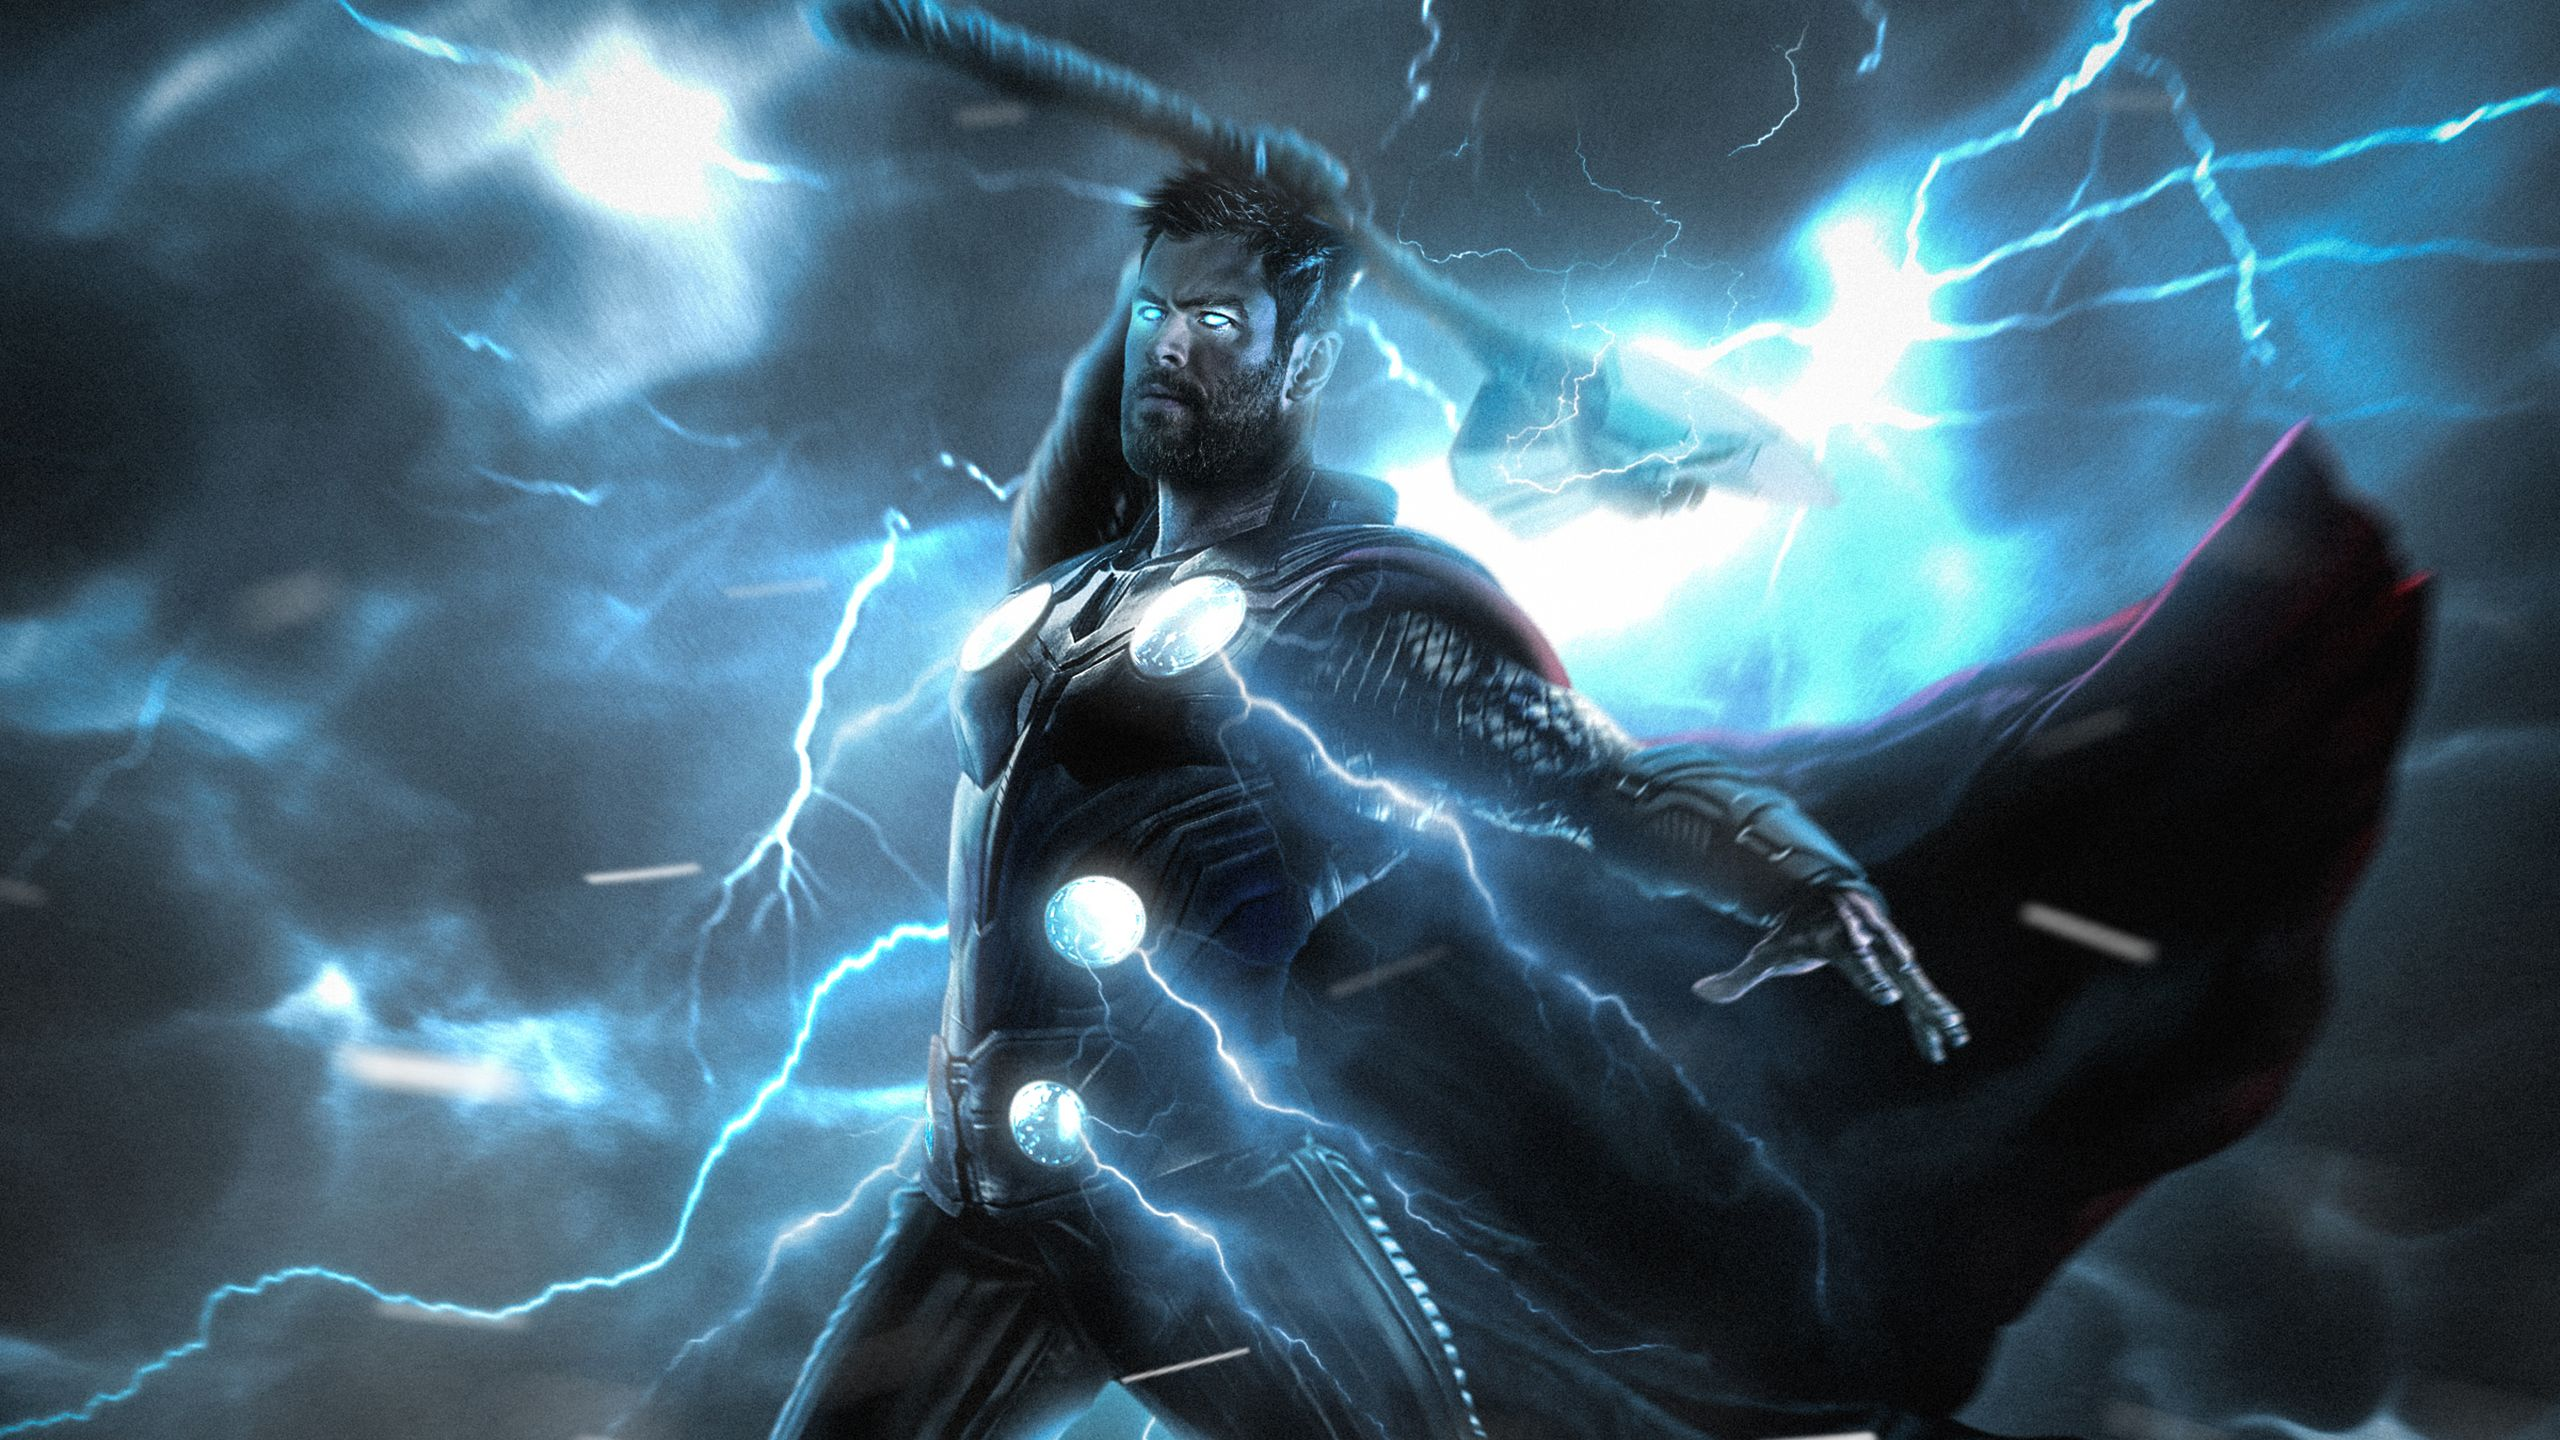 thor wallpaper hd 1920x1080